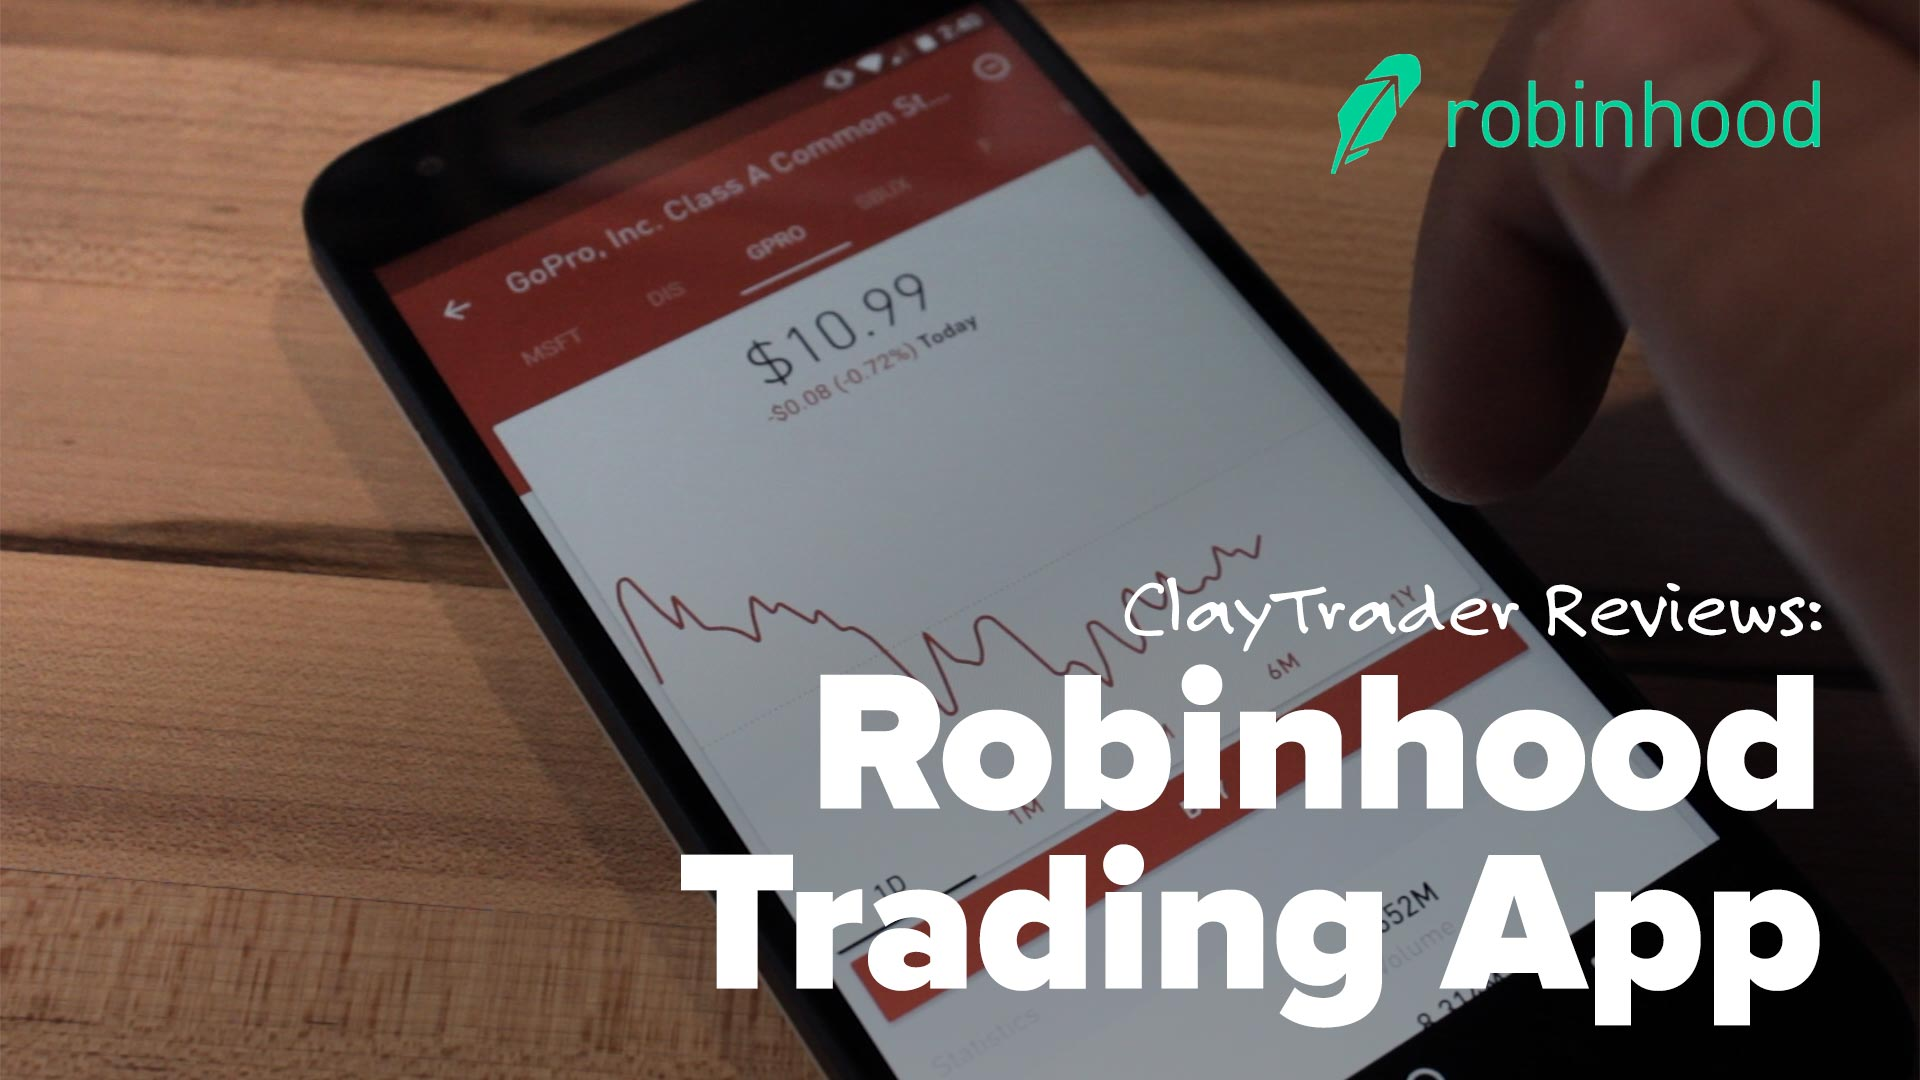 Robinhood Stop Loss Feature